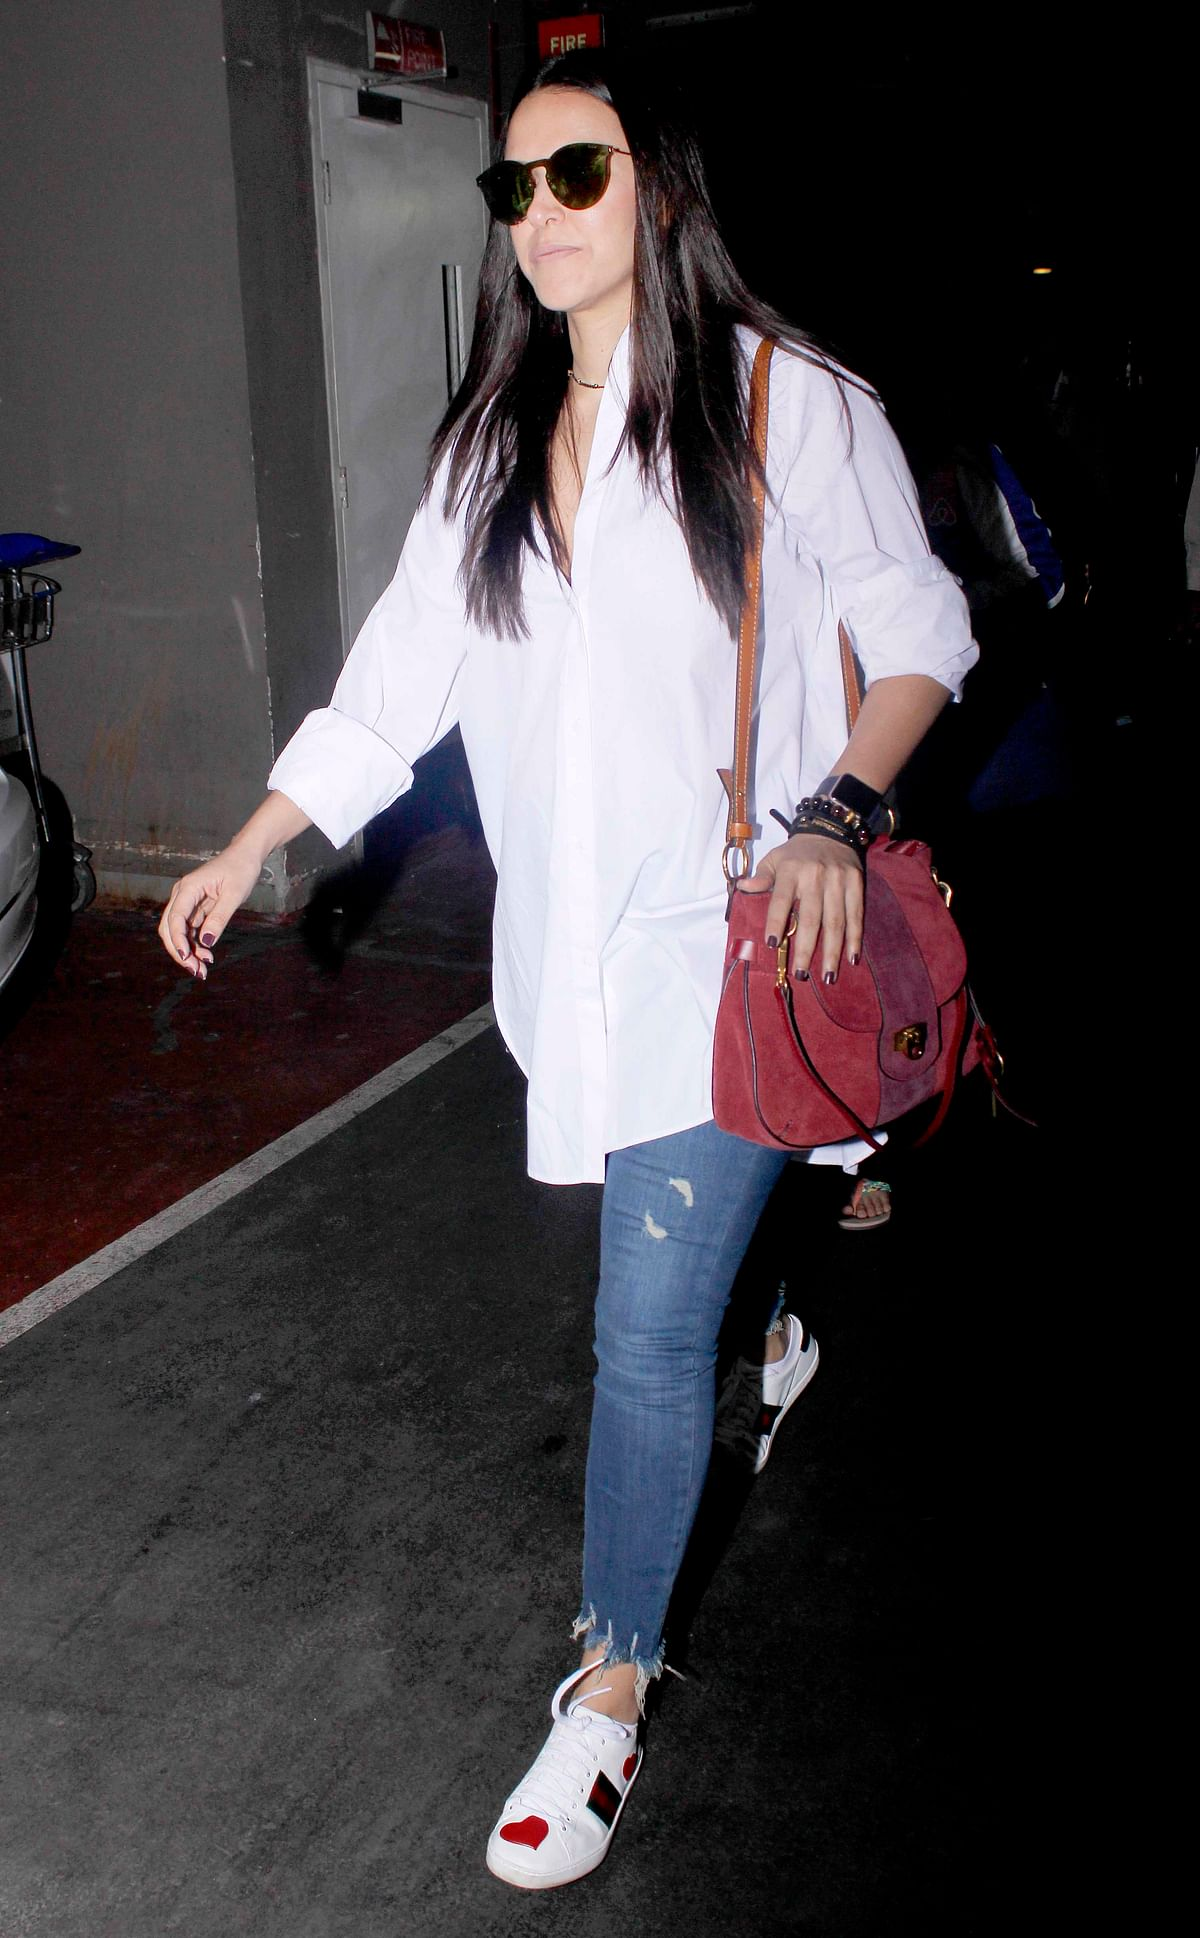 Neha Dhupia is  dressed also dressed in her usual casual attire. (Photo: Yogen Shah)